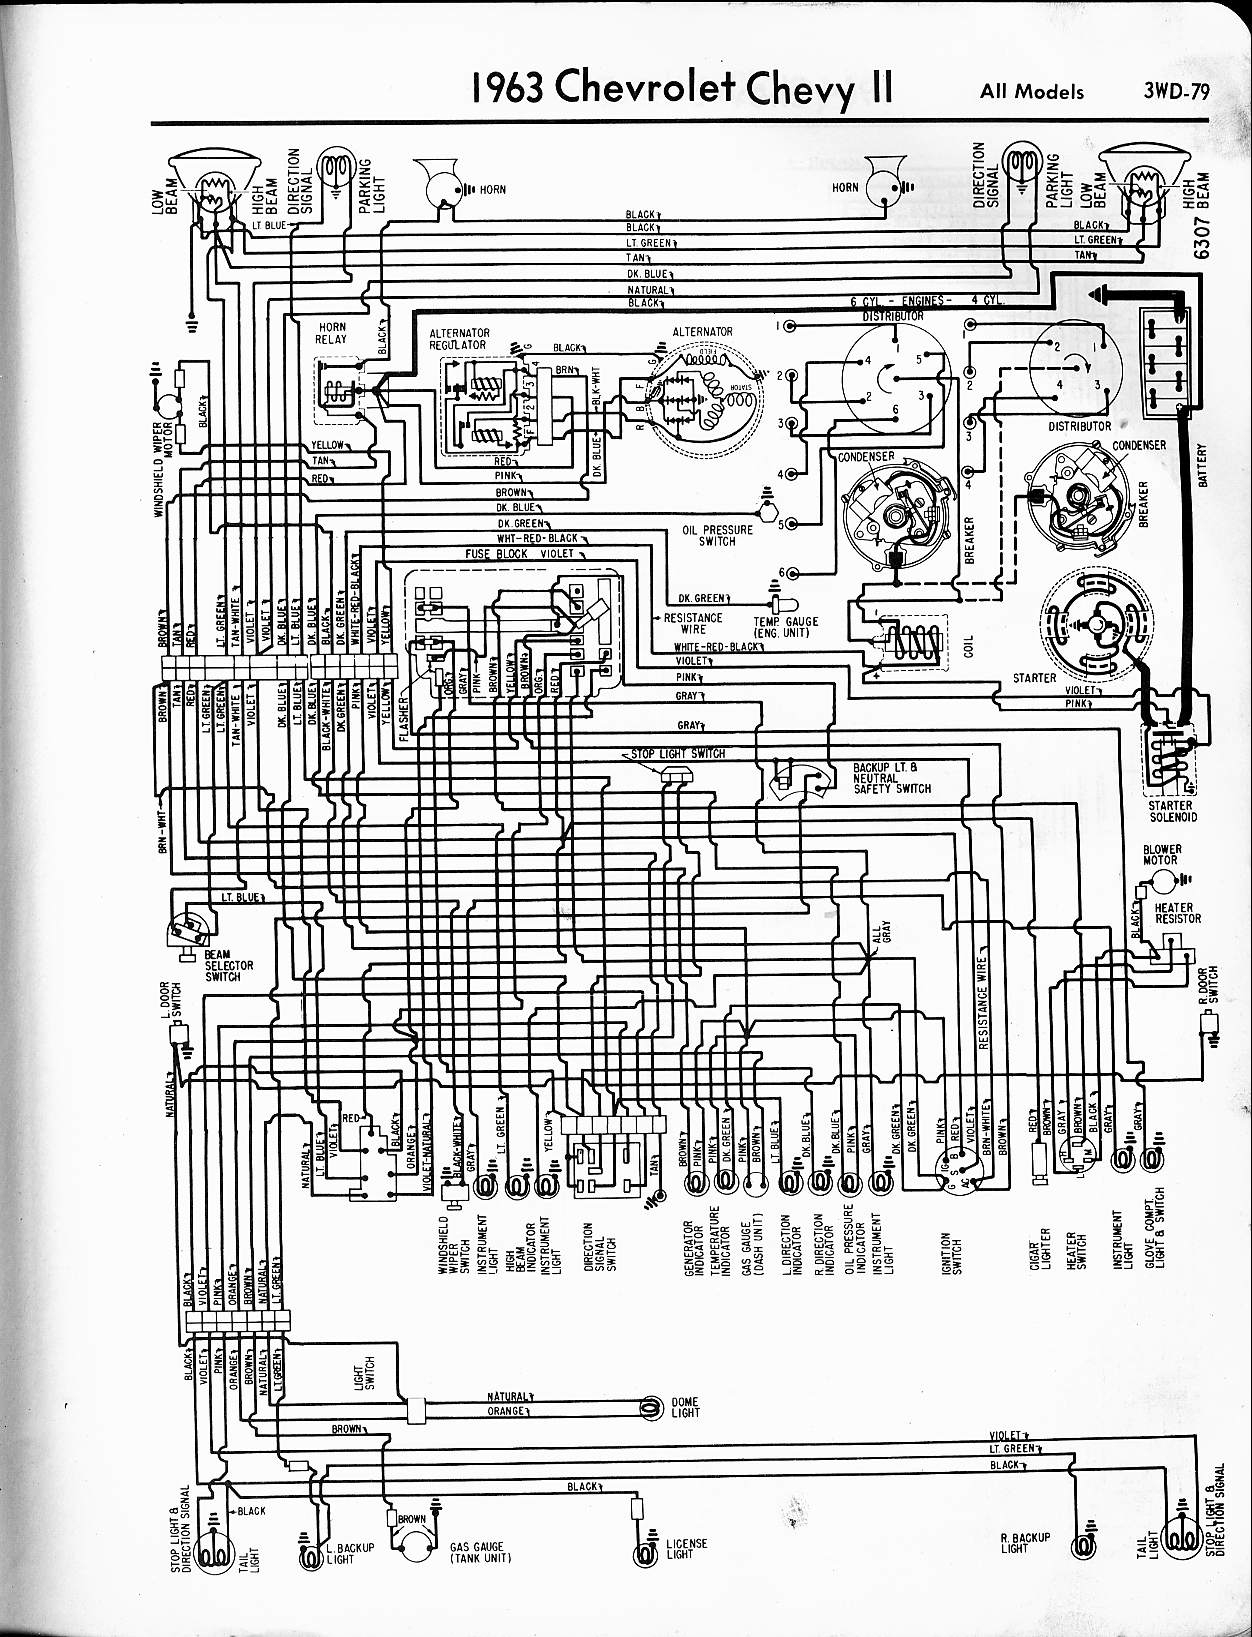 Chevy Nova Wiring Diagram | Schematic Diagram - 1972 Chevy Truck Wiring Diagram